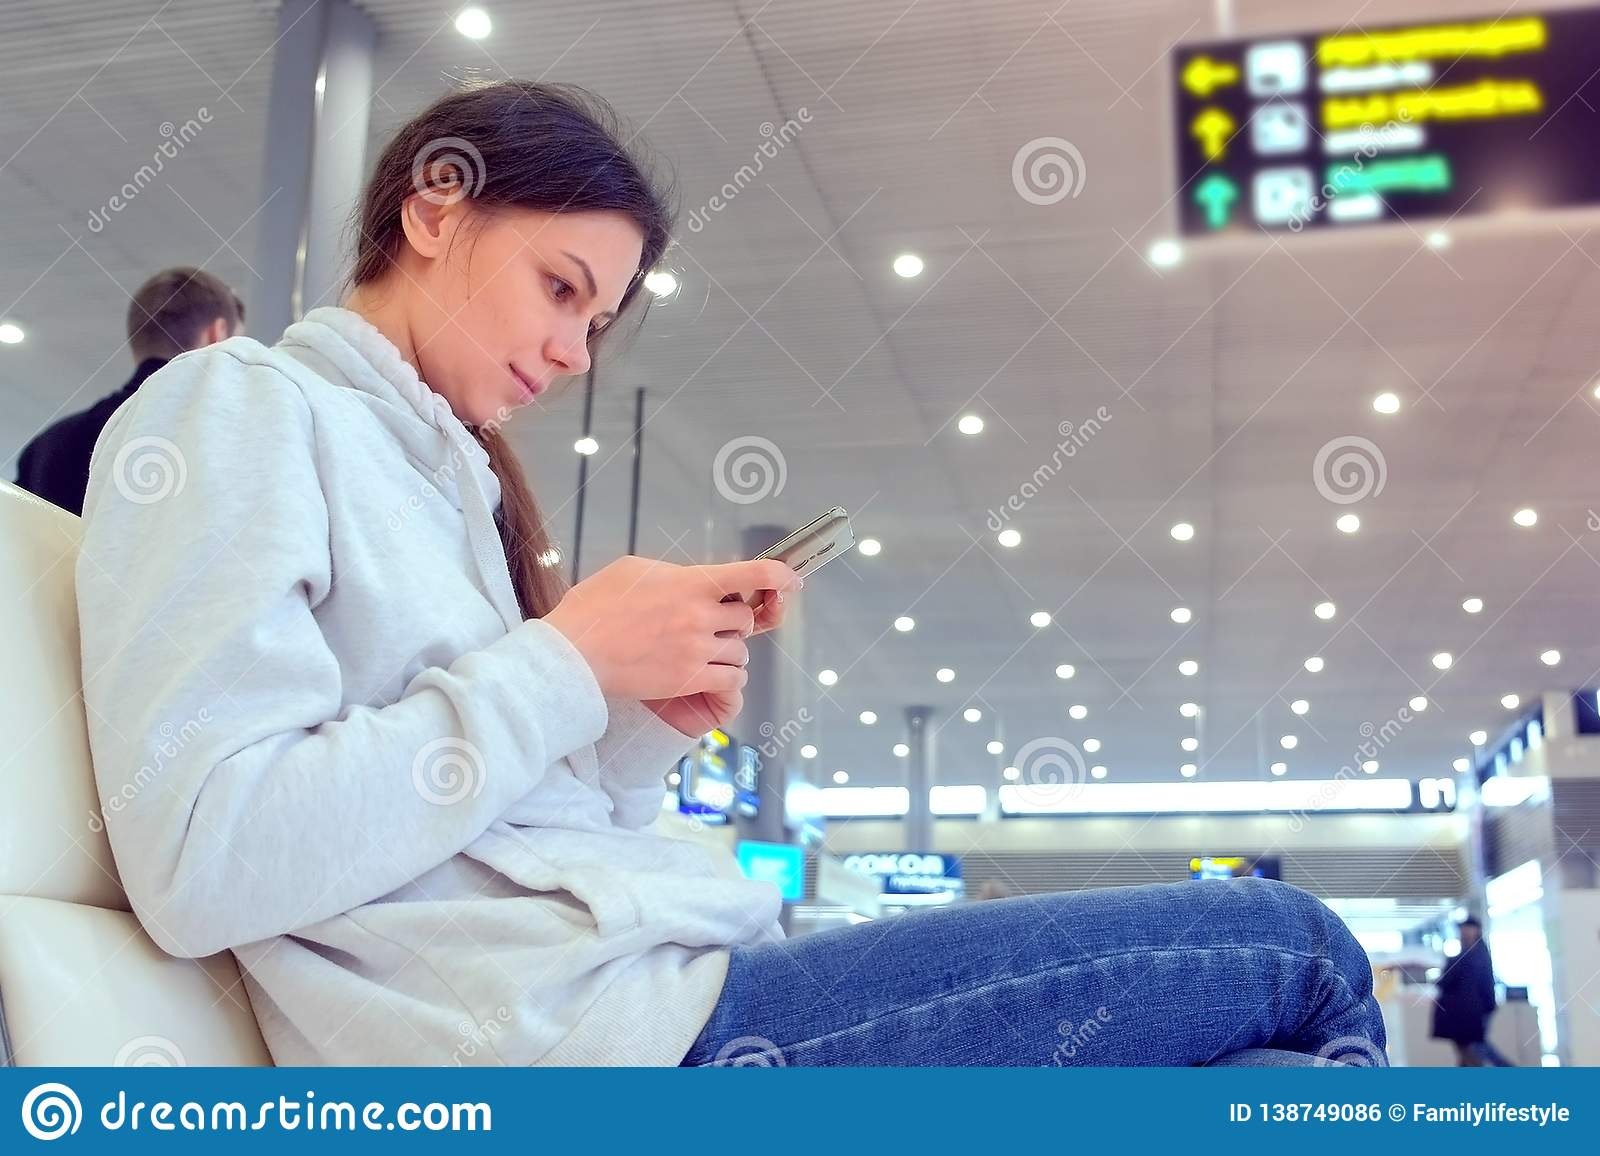 Woman check-in online registration on her mobile phone in airport hall, side view.